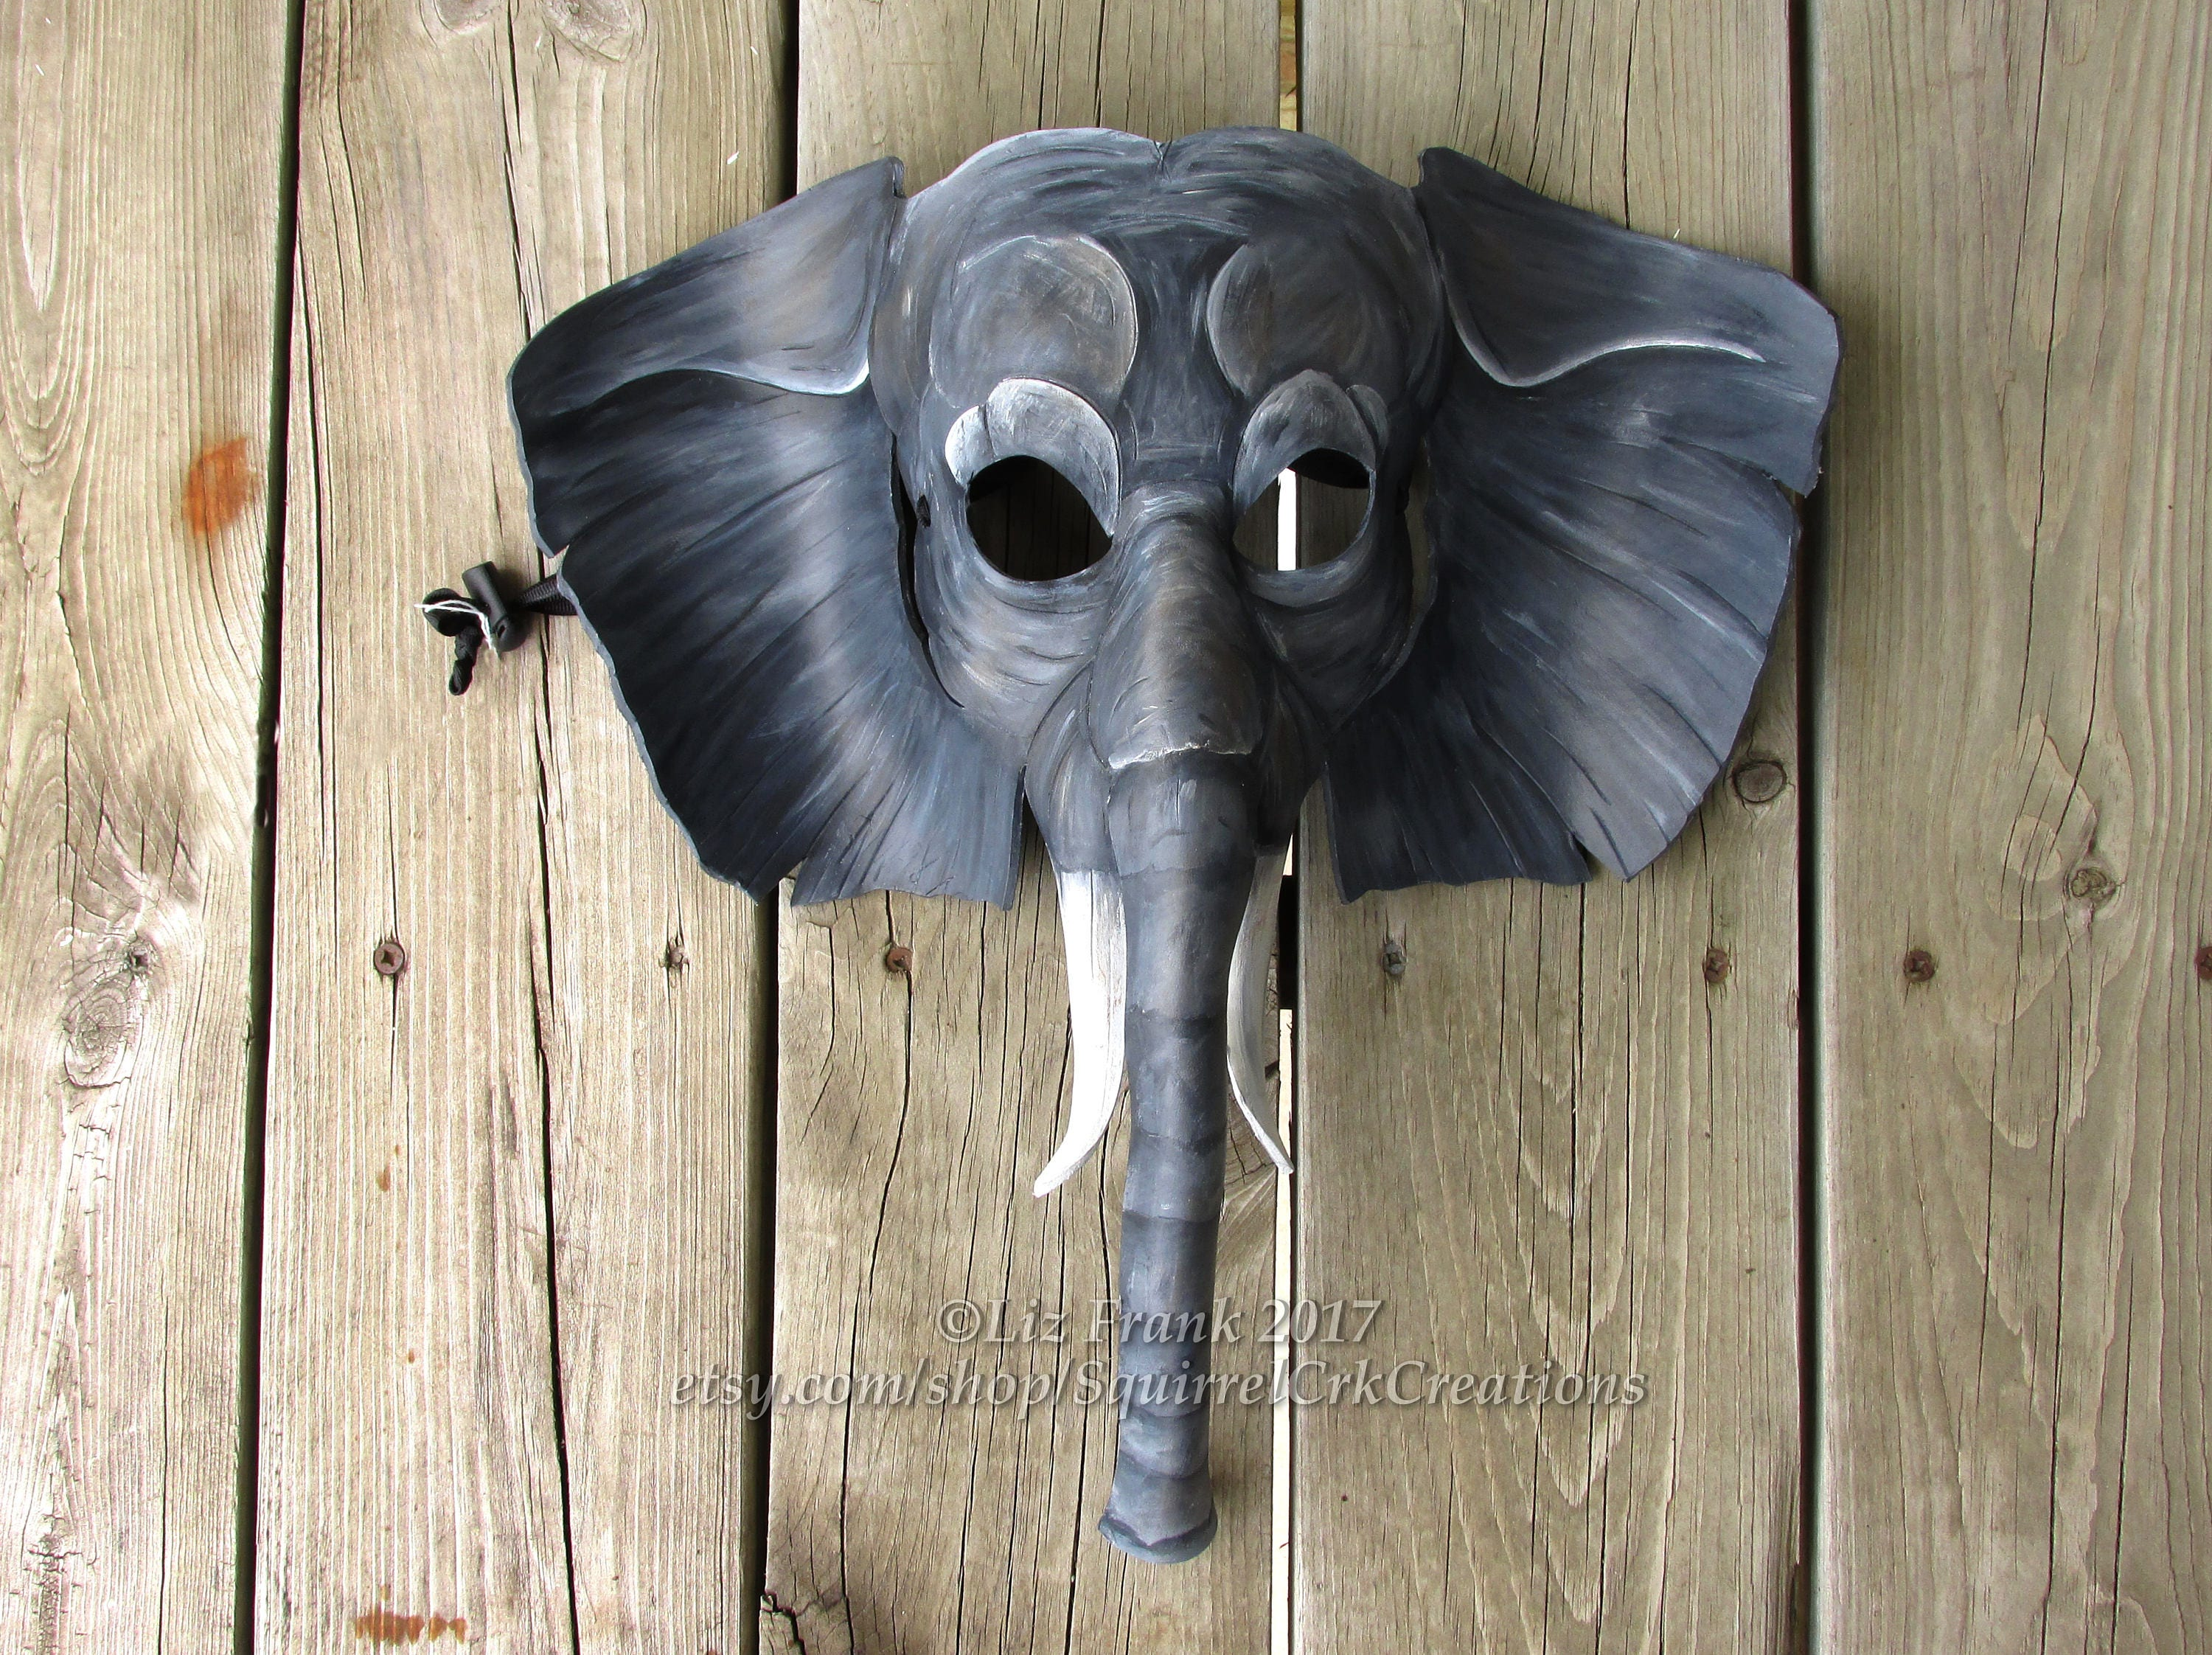 Elephant Mask African Animal Leather LARP Cosplay Theater Prop Halloween Costume